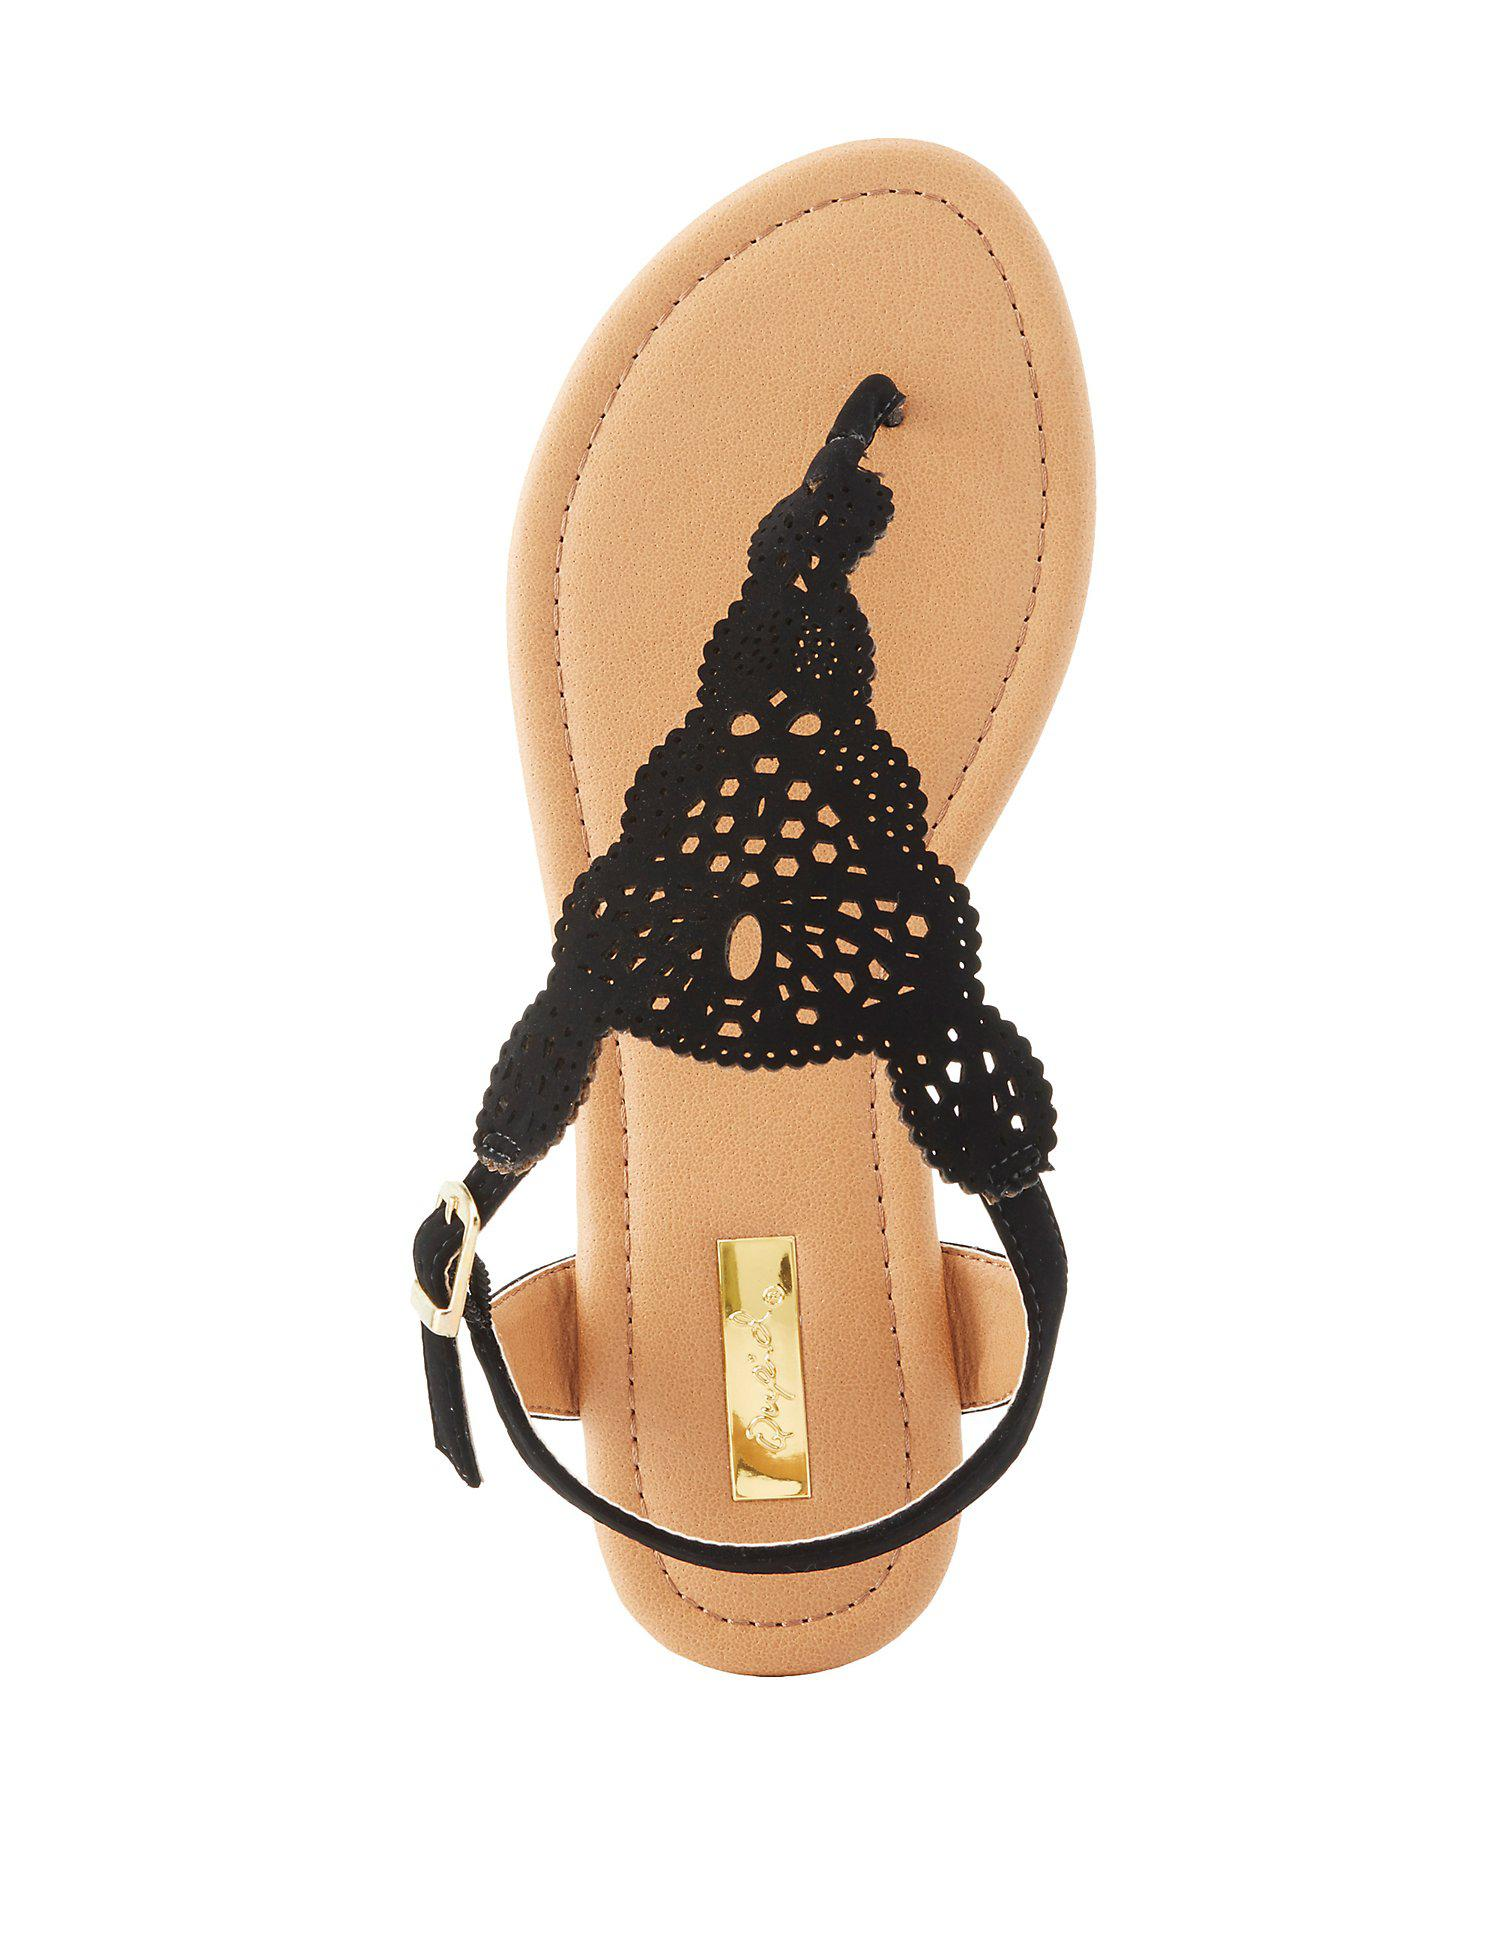 4a063b131 Lyst - Charlotte Russe Qupid Laser Cut Thong Sandals in Black